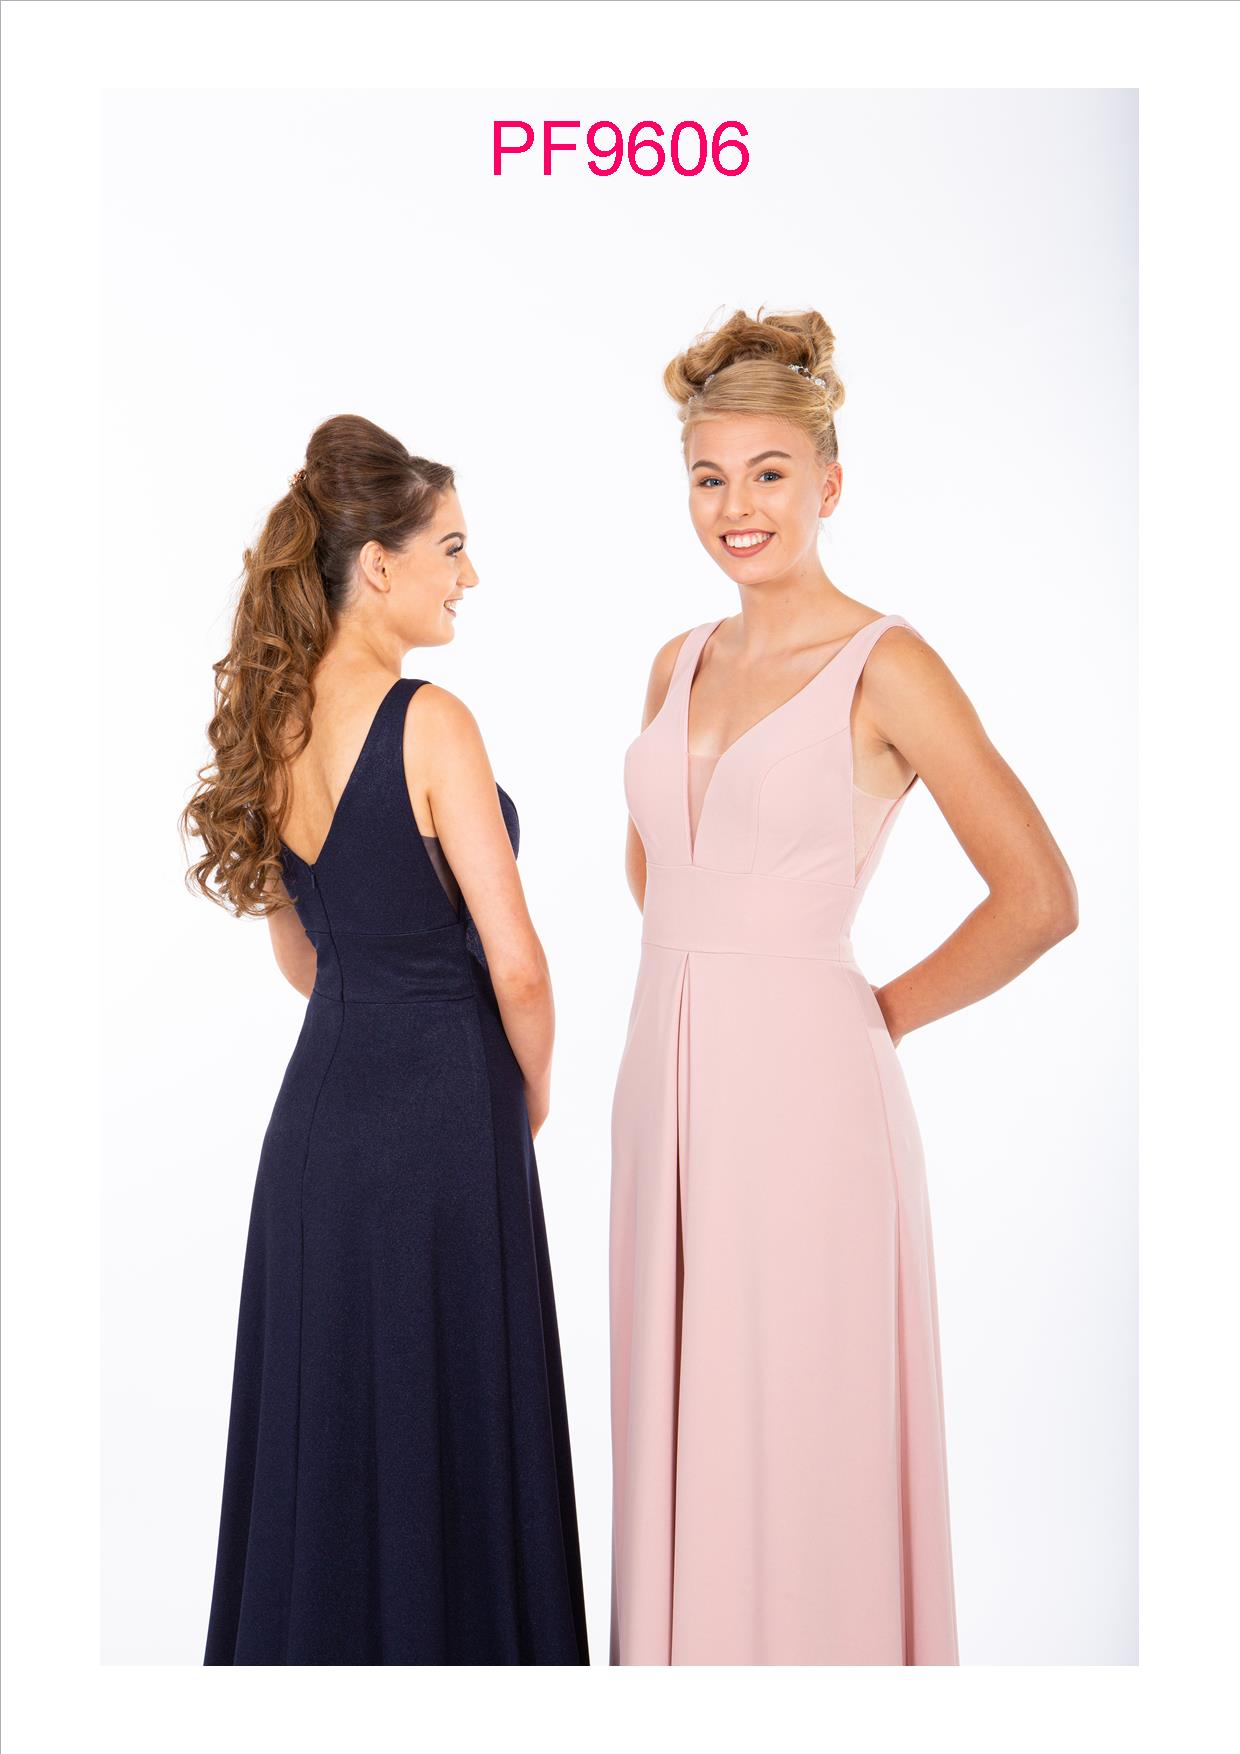 PF9634 Nude Pink Sparkle Prom/Evening Dress - Prom Frocks